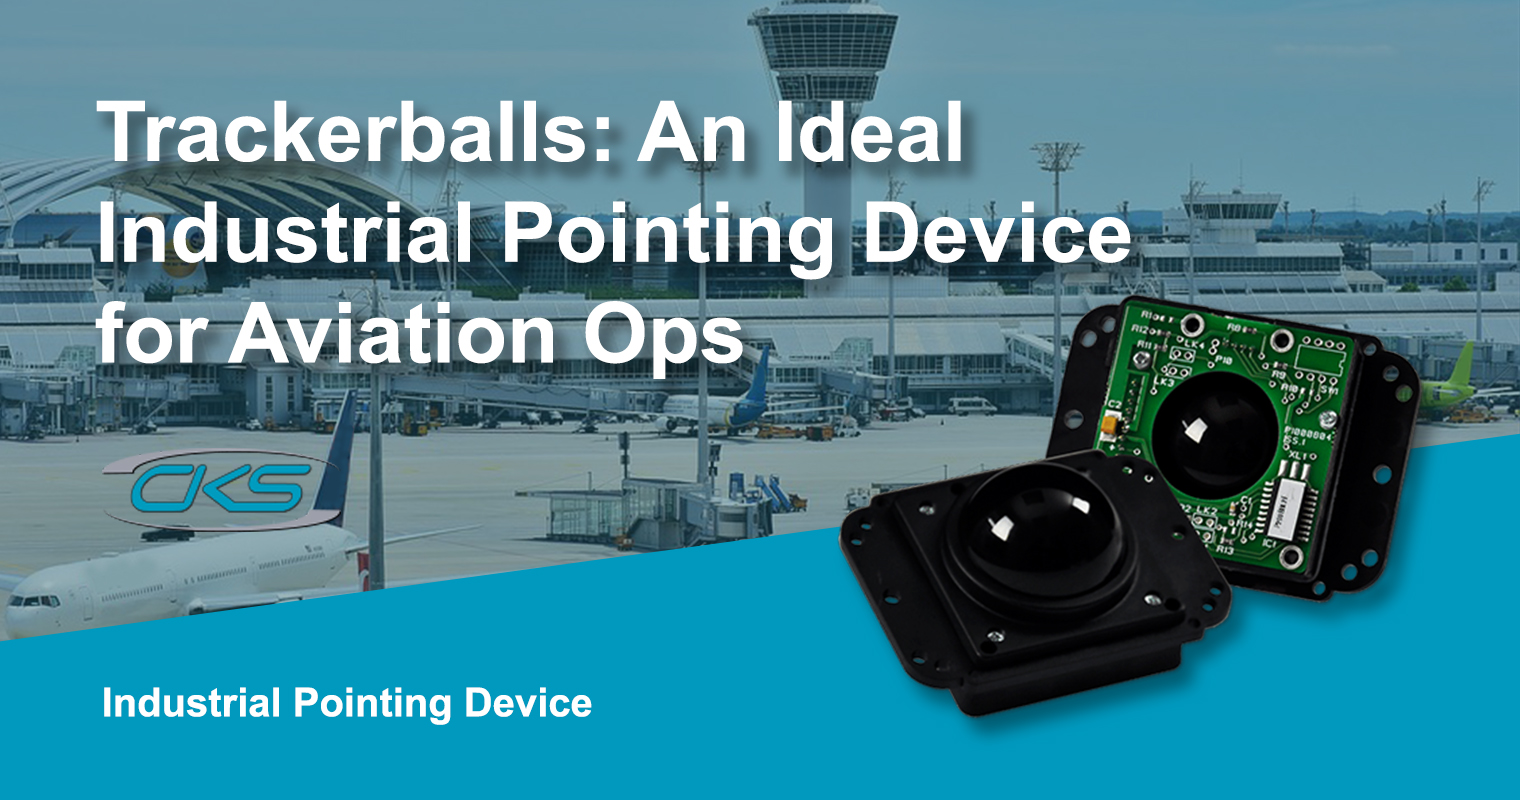 Panel PCs with Trackerballs for an Accurate Flight Monitoring System